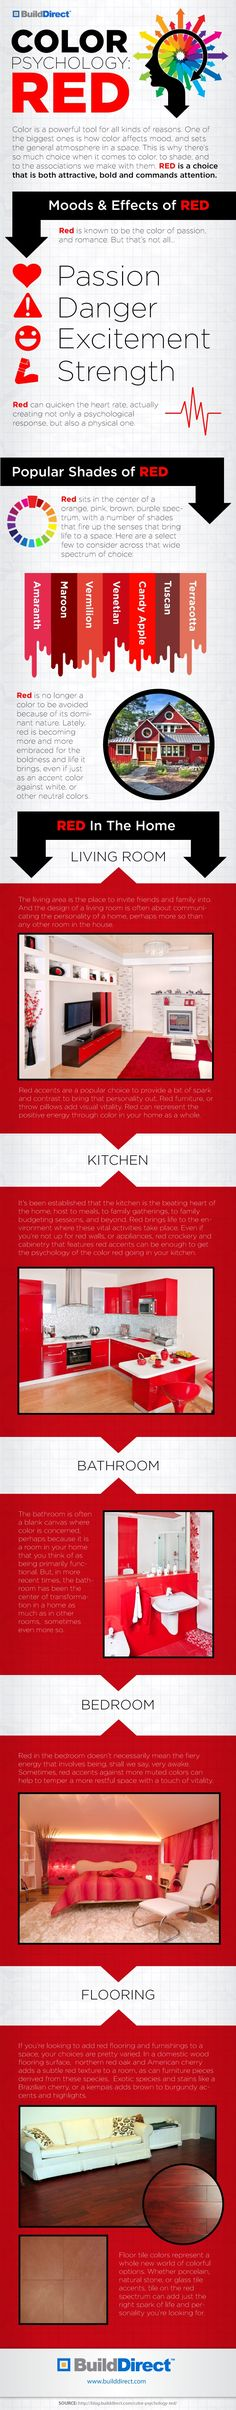 Color is an extremely powerful tool when it comes to home design. How do you feel about incorporating RED into your home design after looking at this infographic?